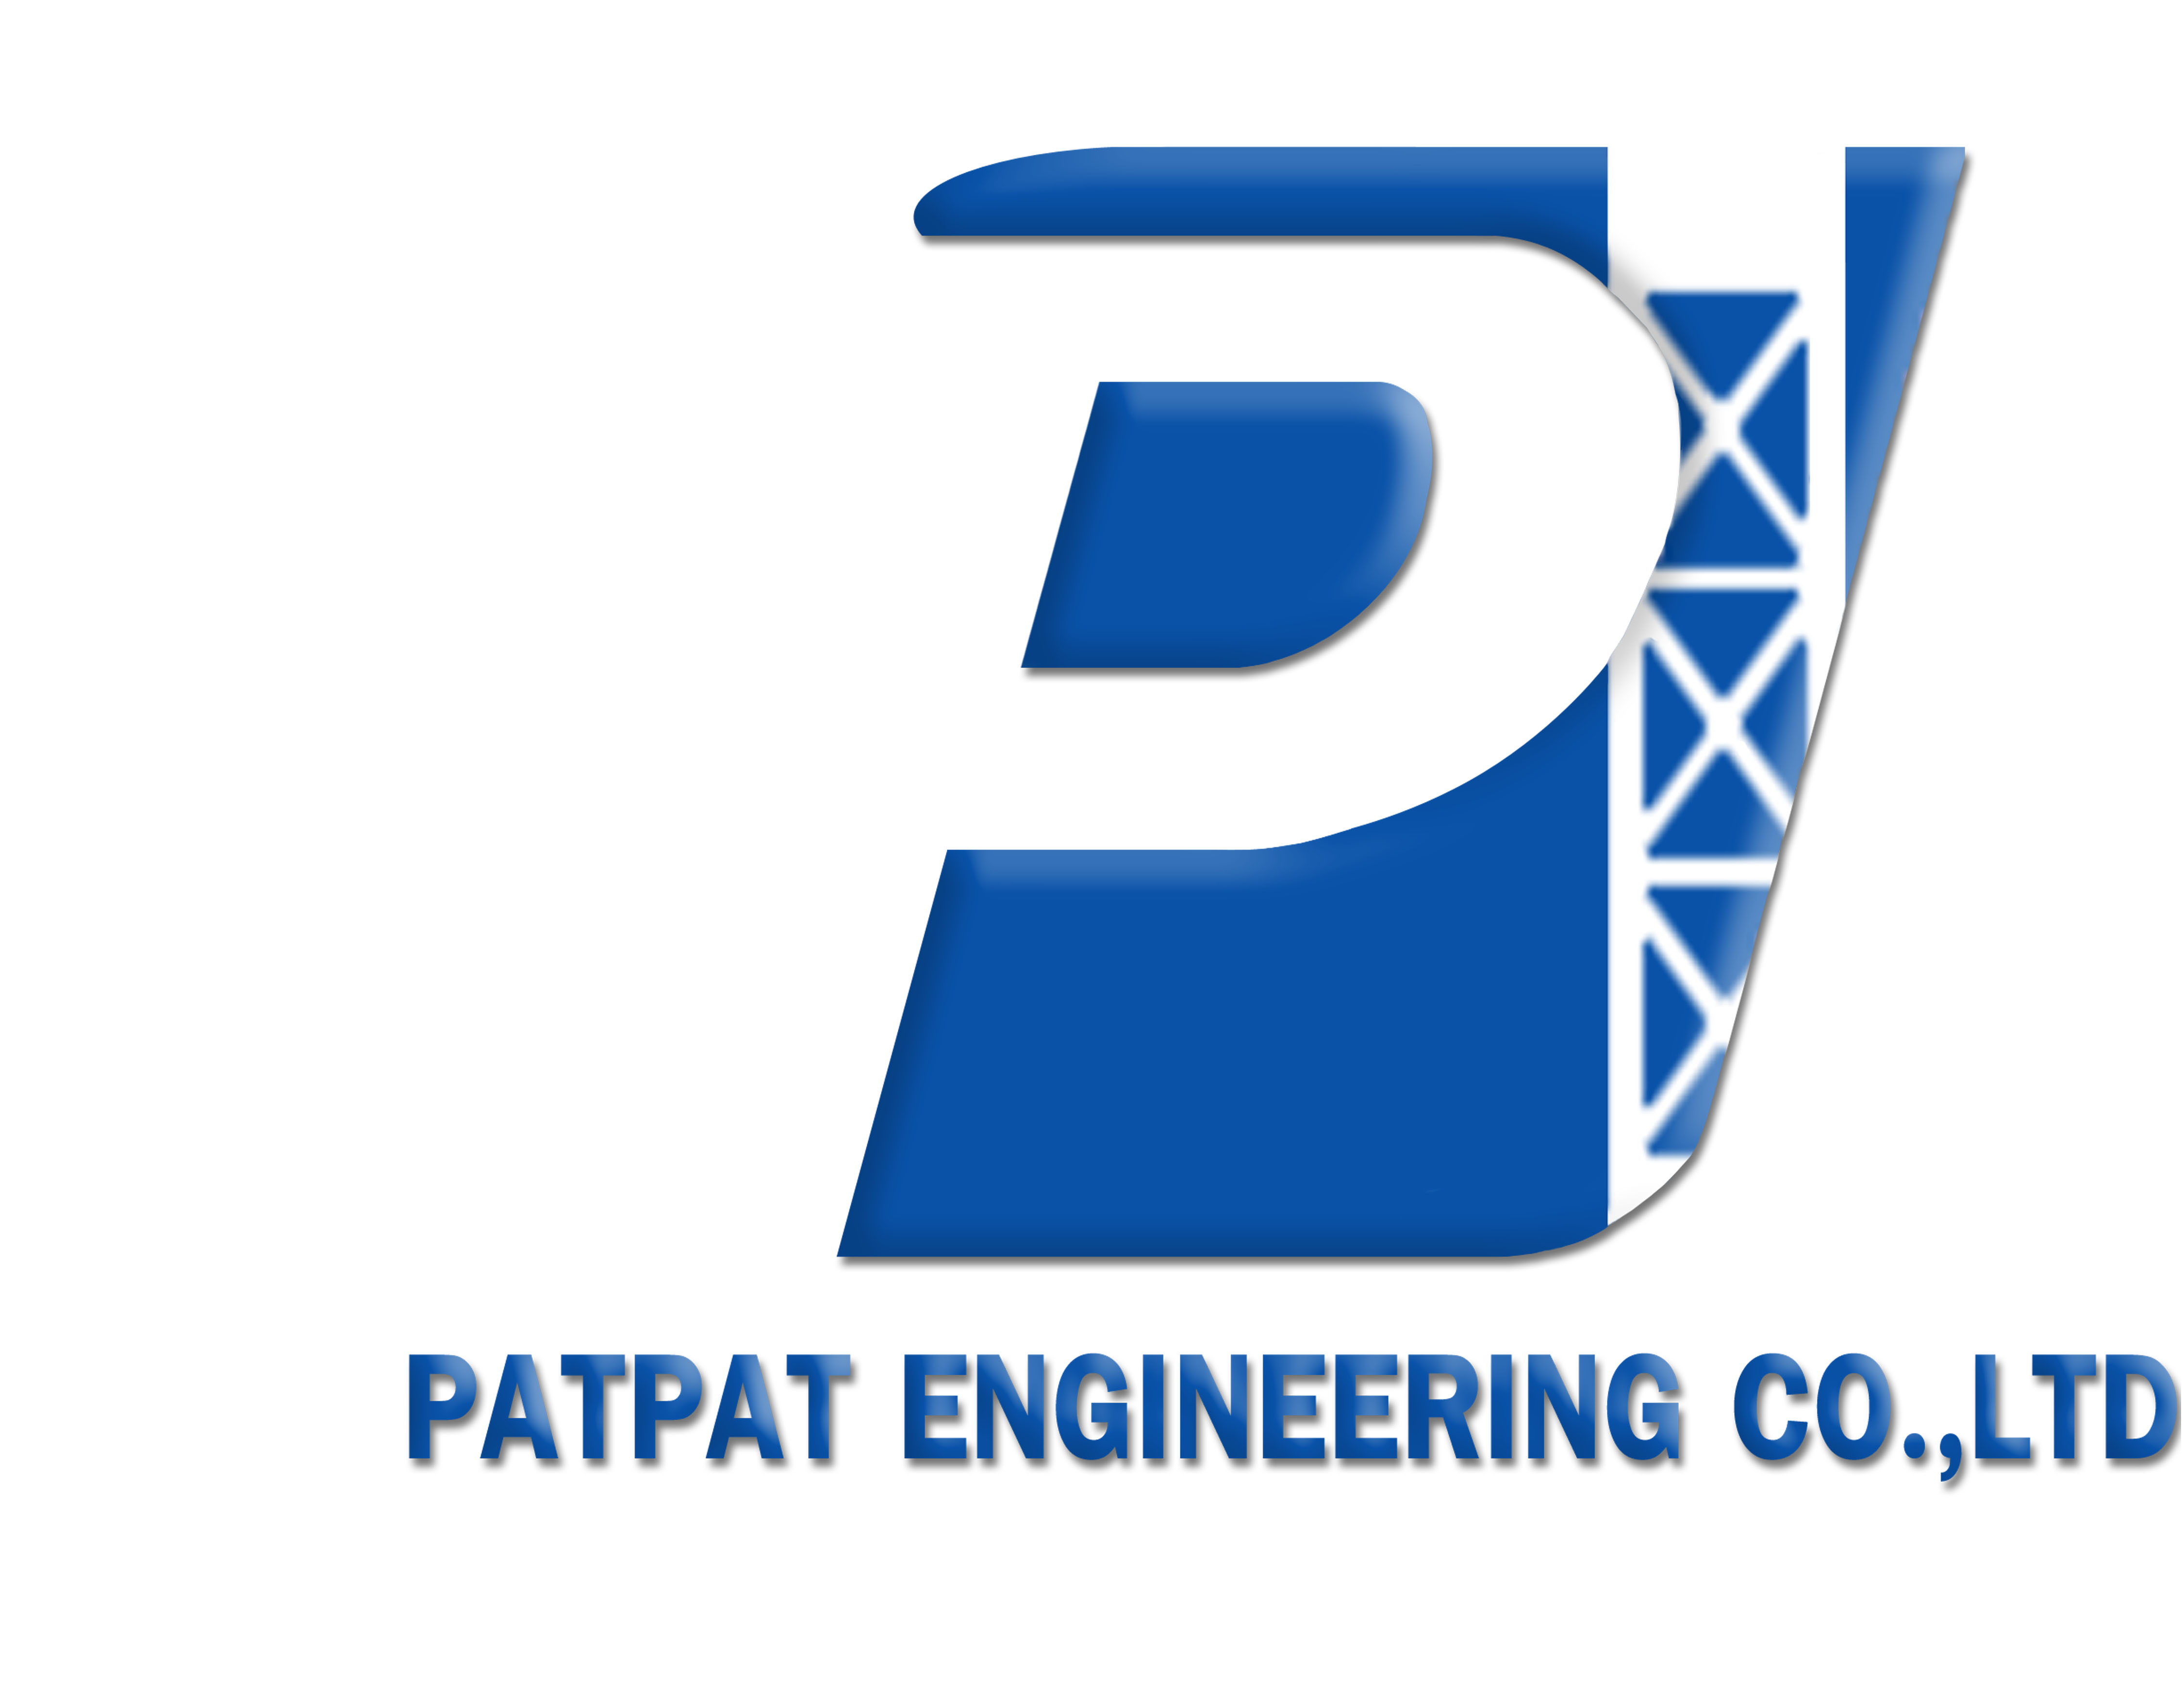 Pat Pat Engineer